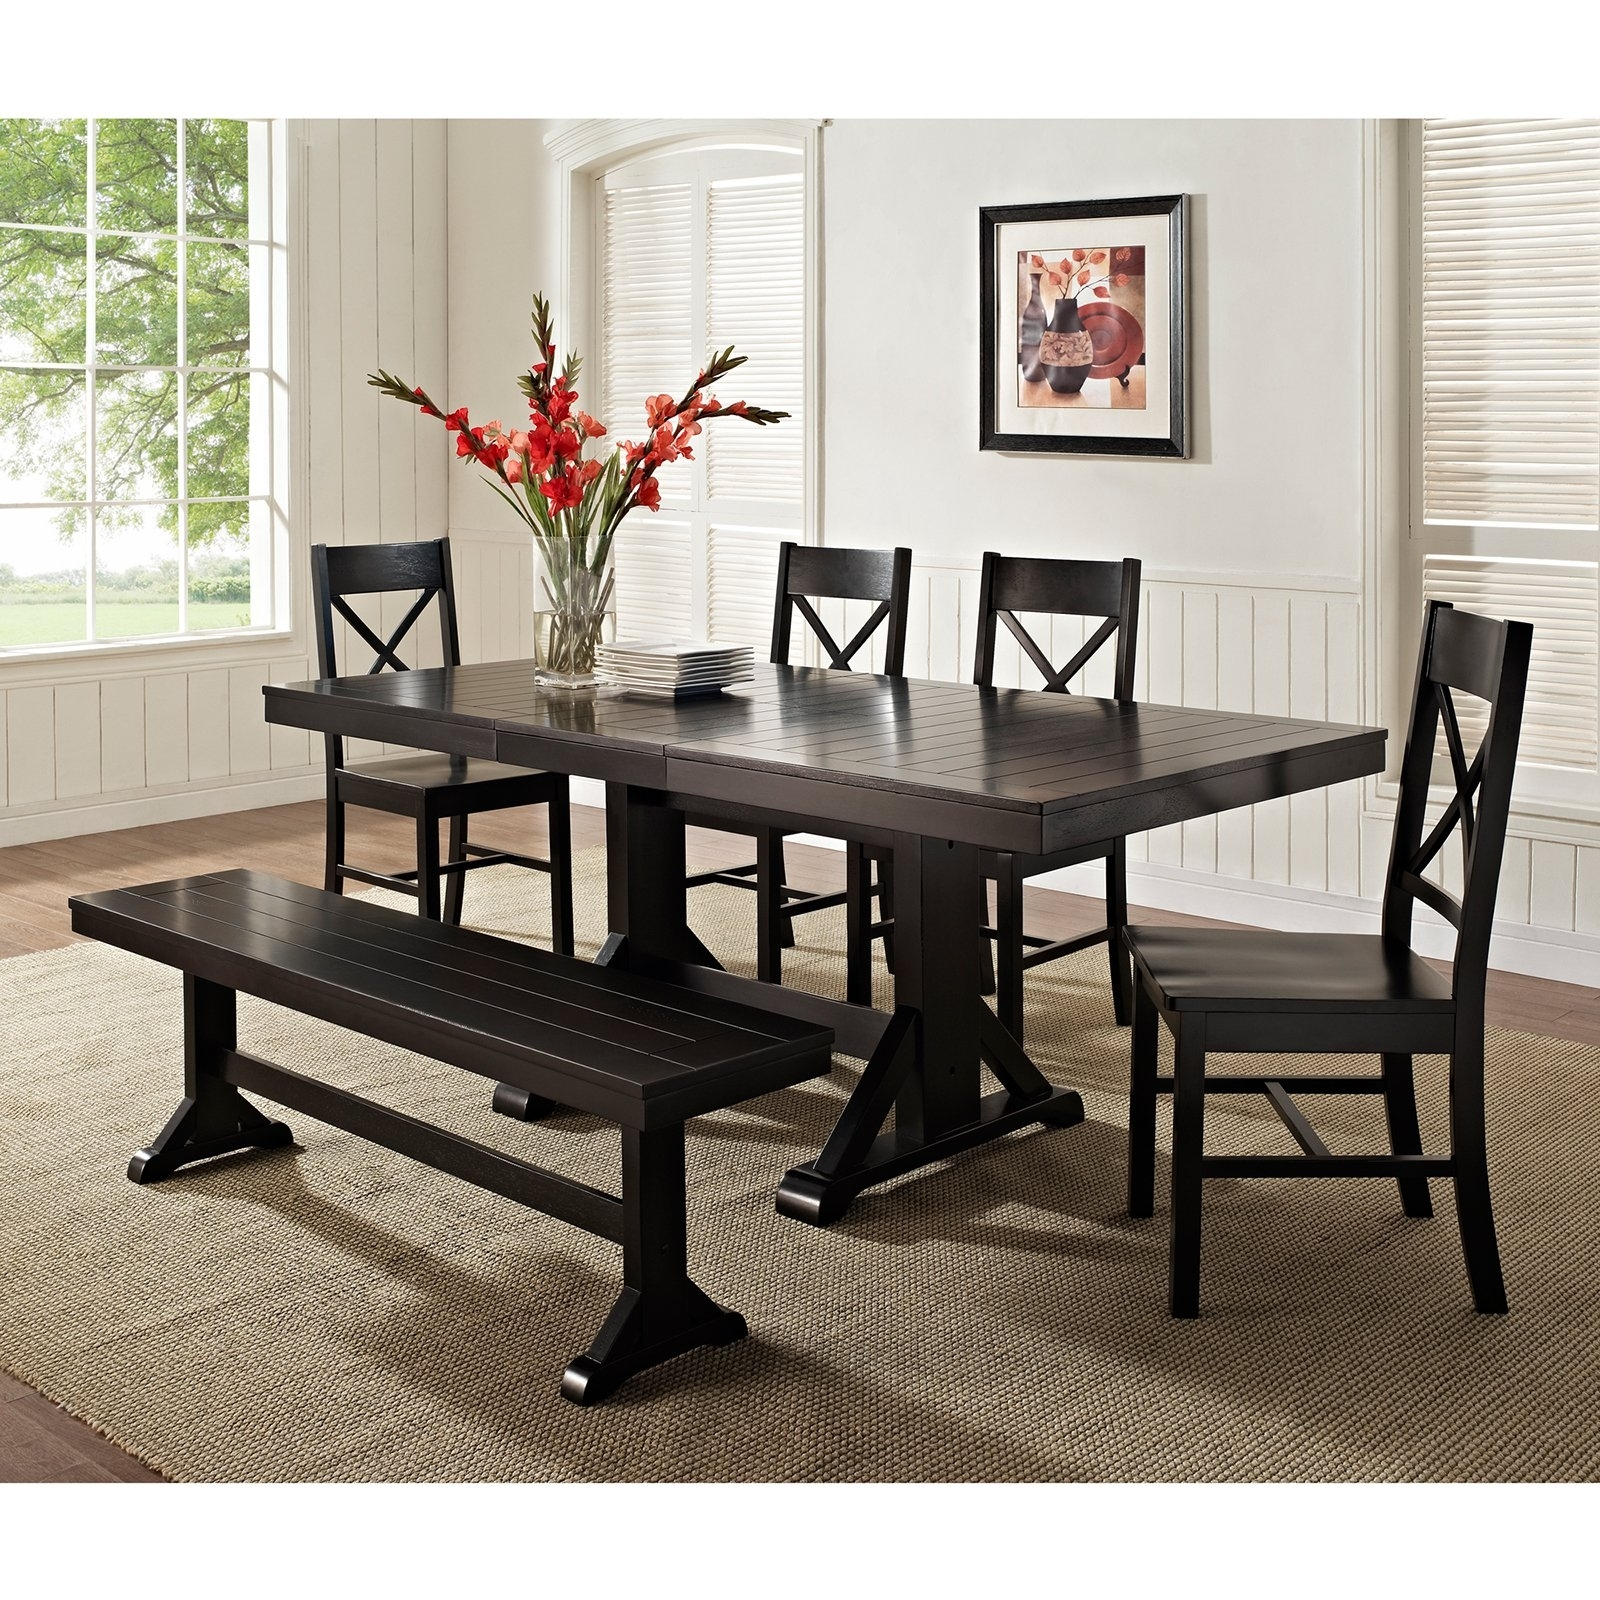 Most Recently Released Dark Wood Dining Tables 6 Chairs Pertaining To Walker Edison Black 6 Piece Solid Wood Dining Set With Bench (Gallery 17 of 25)